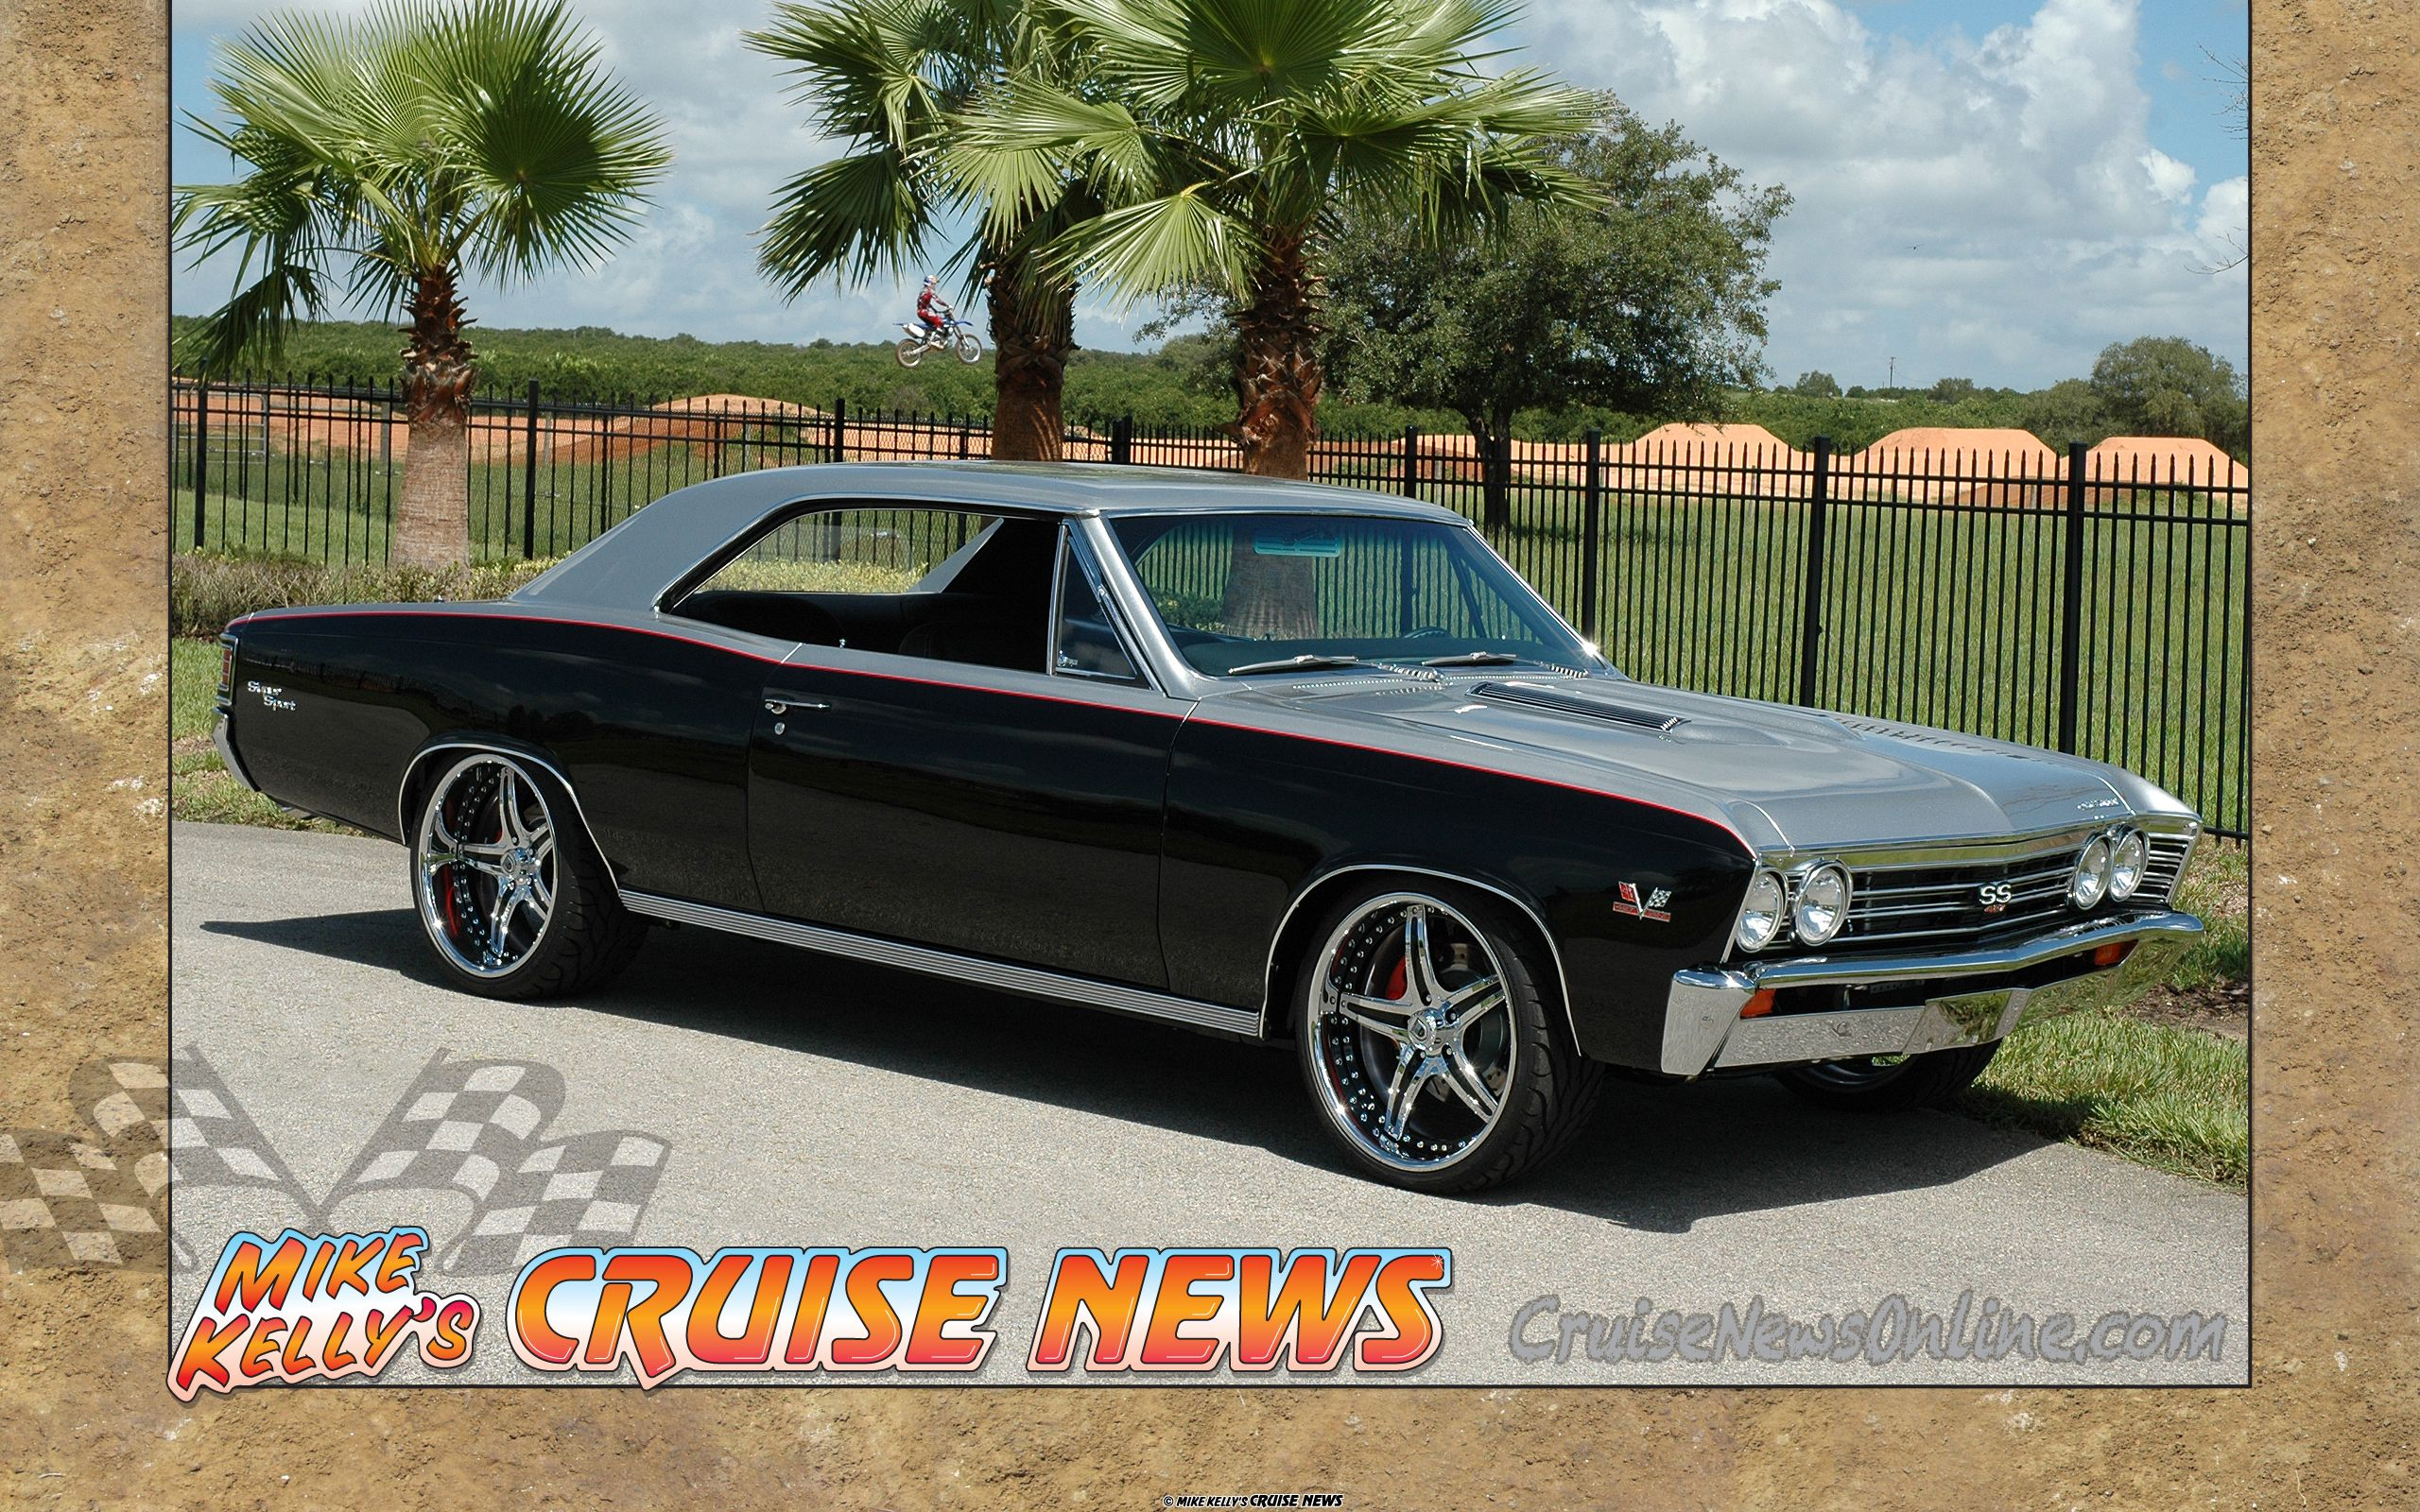 James stewart s 1967 chevy chevelle ss silver black red asanti af144 wheels 5 star http